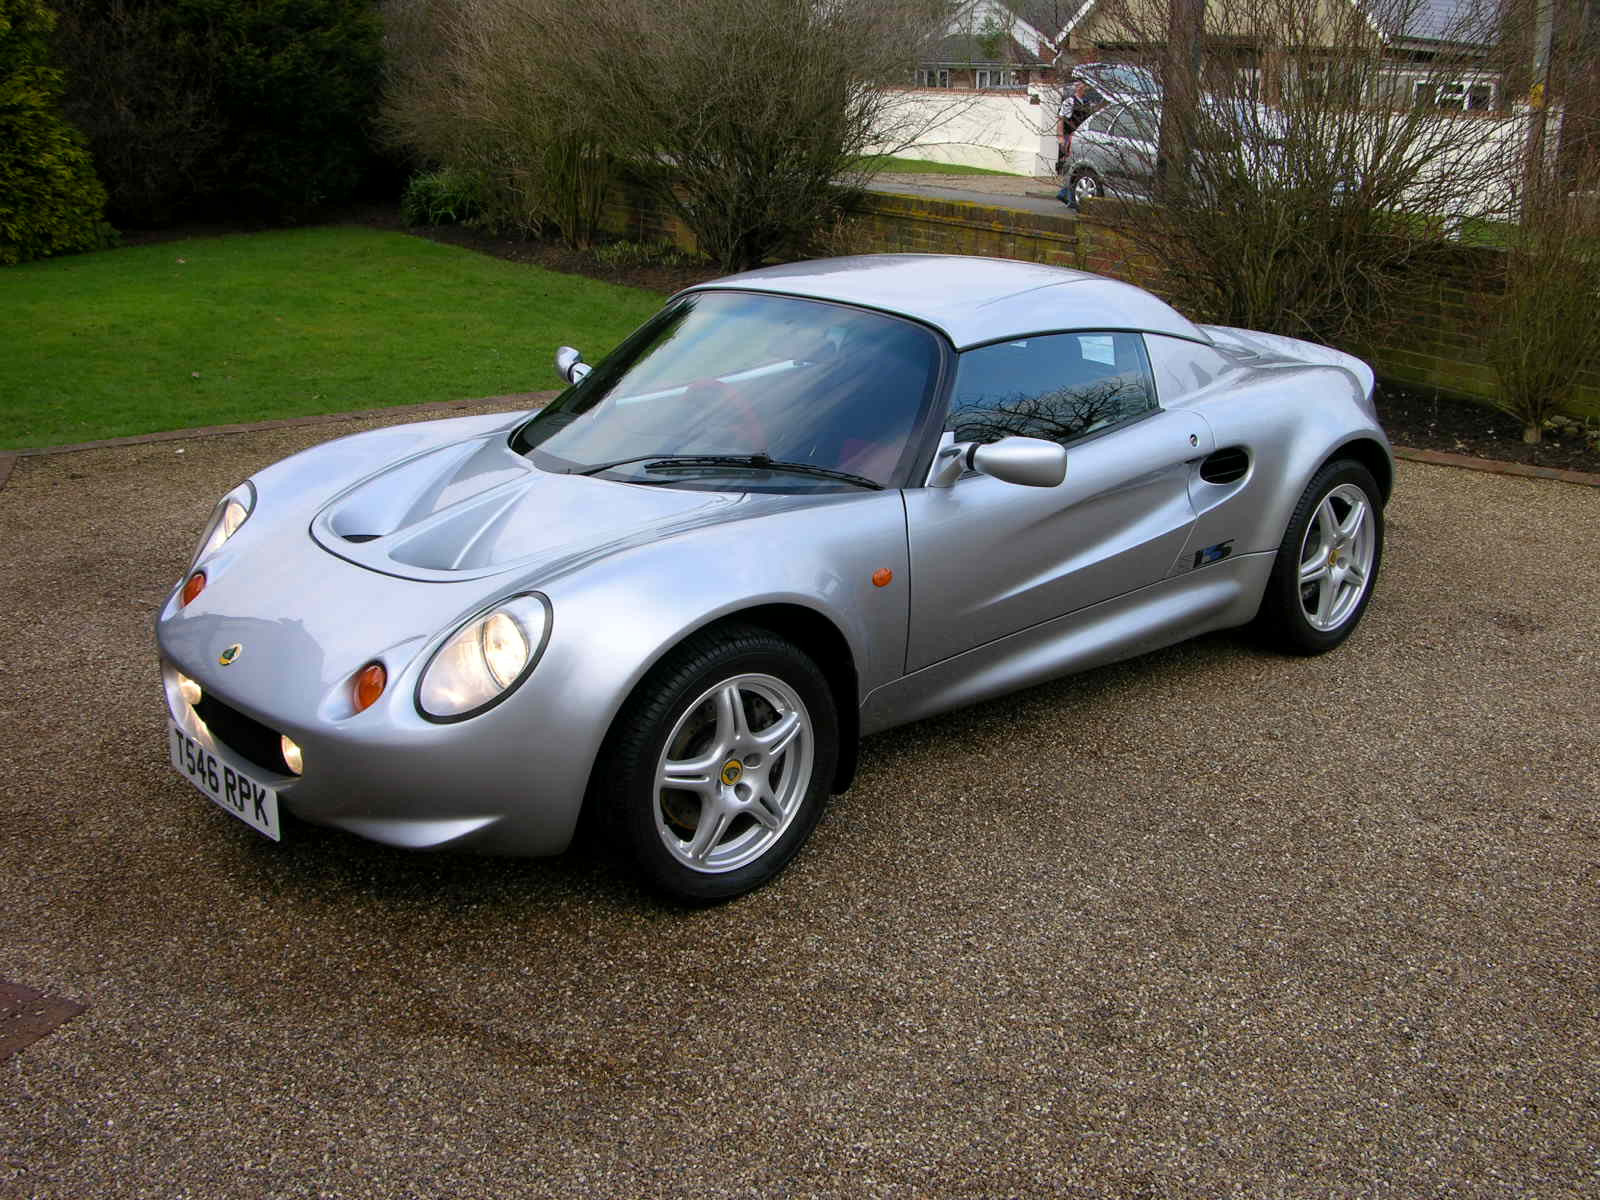 http://auto-database.com/image/pictures-of-lotus-elise-1996-167278.jpg